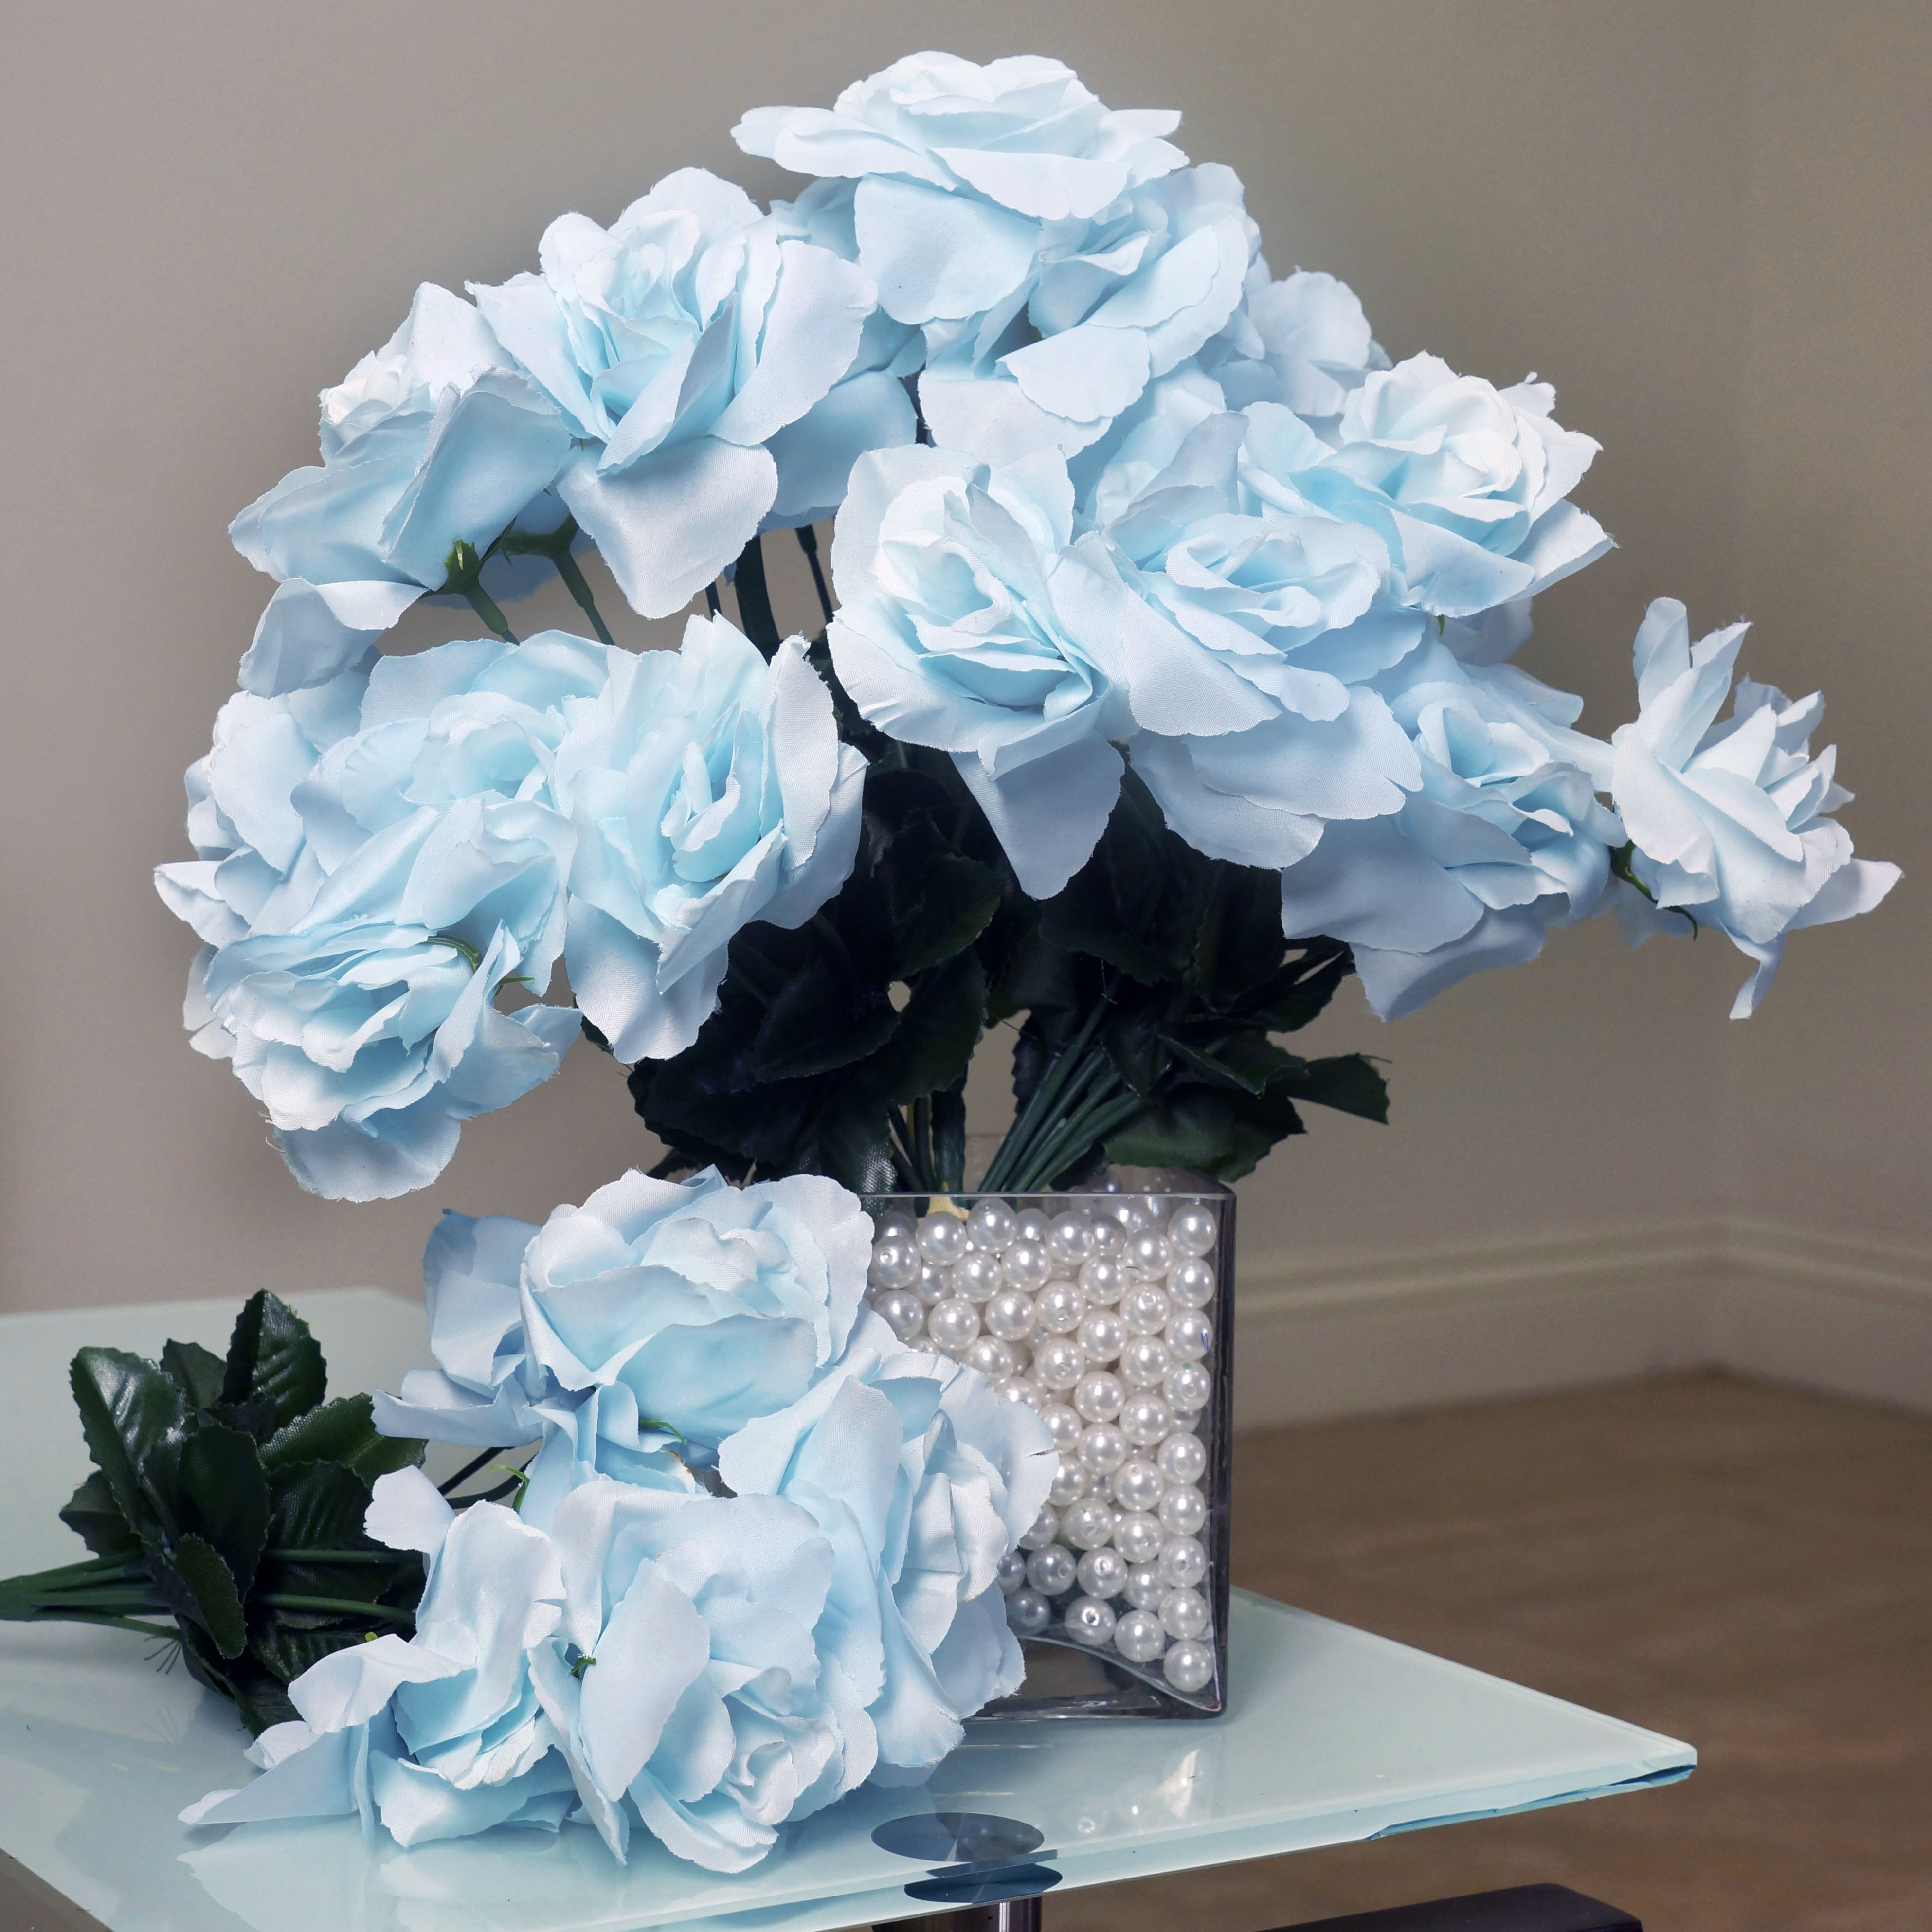 84 Light Baby Blue Silk Open Roses Wedding Flowers Bouquets For